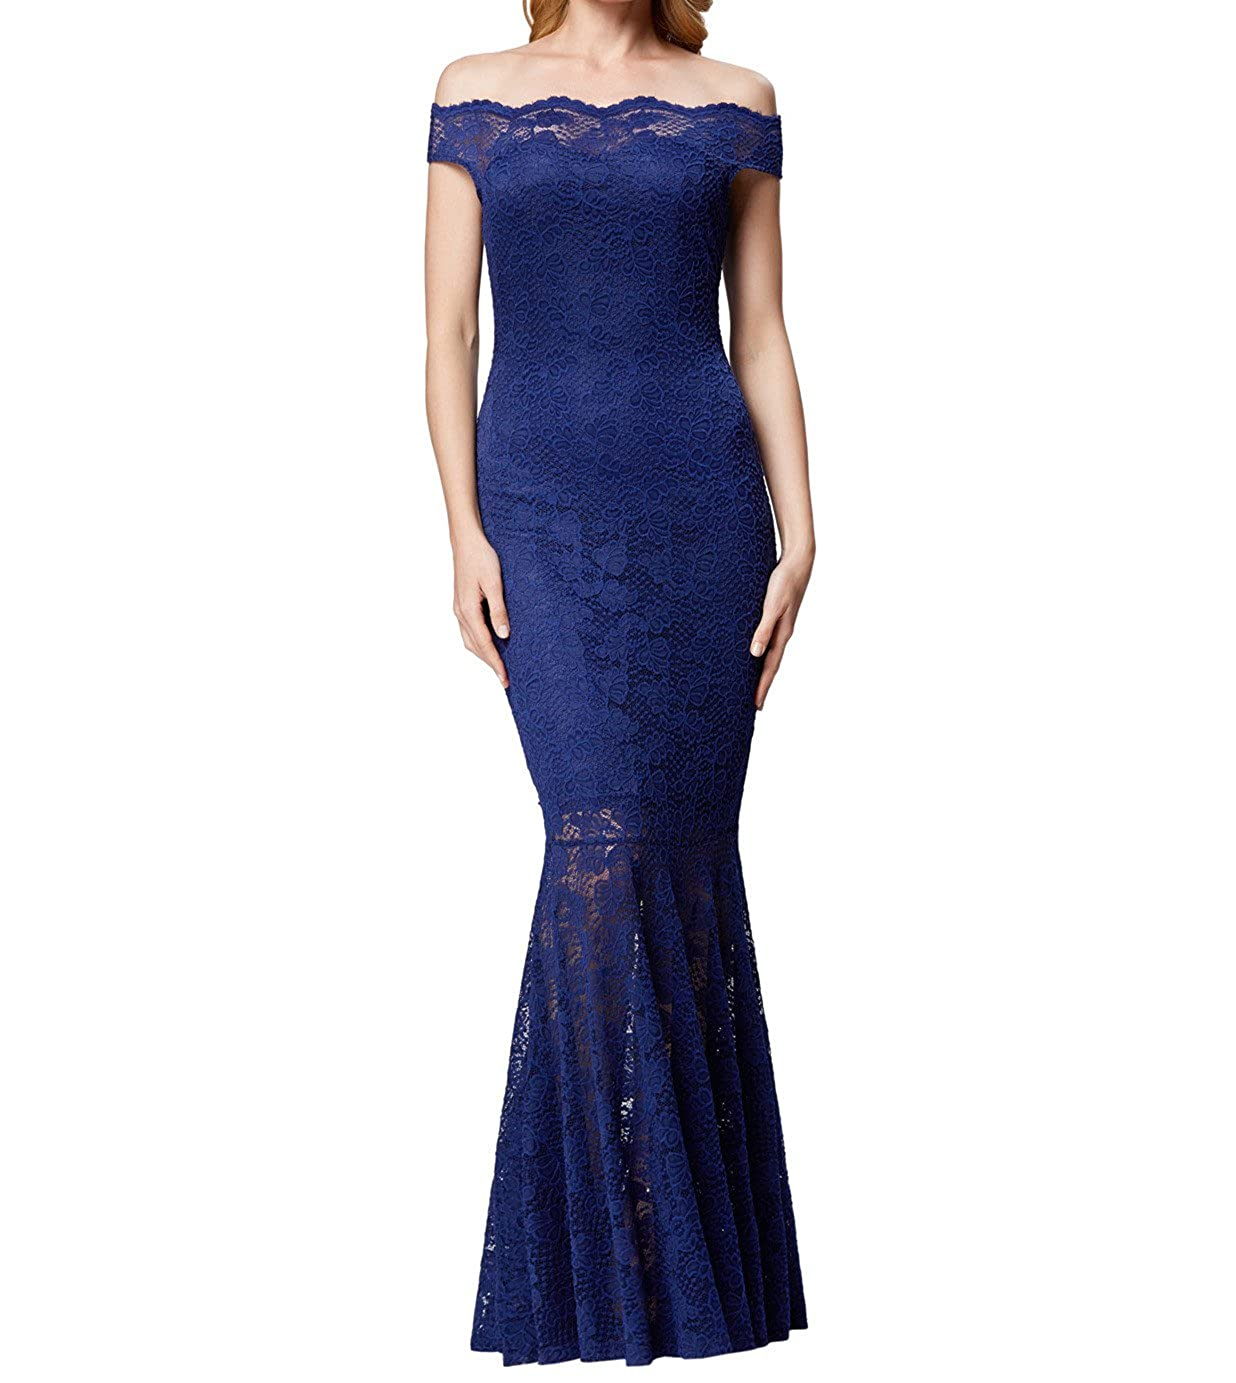 bc6b6e86a24 Top 10 wholesale Nice Dress For Engagement Party - Chinabrands.com